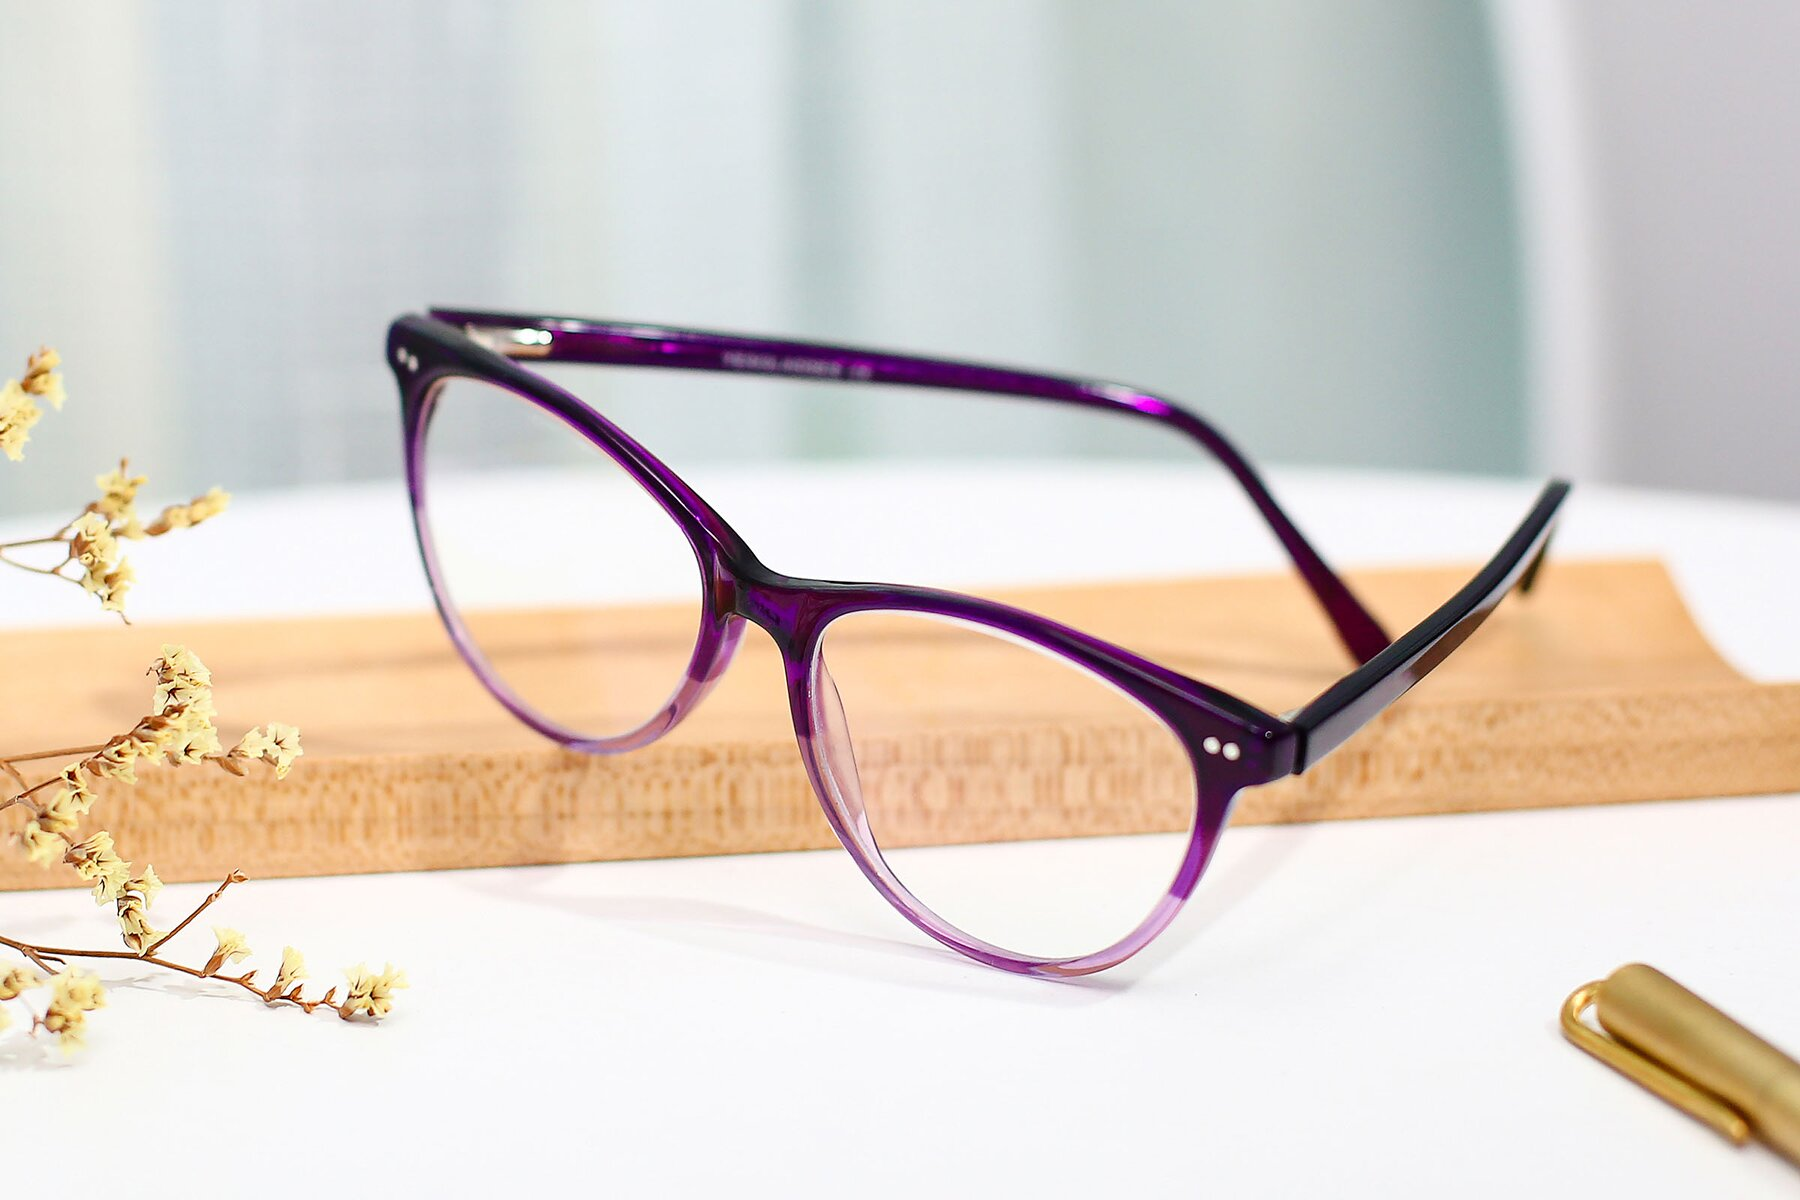 Women's lifestyle photography #2 of SR6050 in Transparent Gradient Violet with Clear Eyeglass Lenses